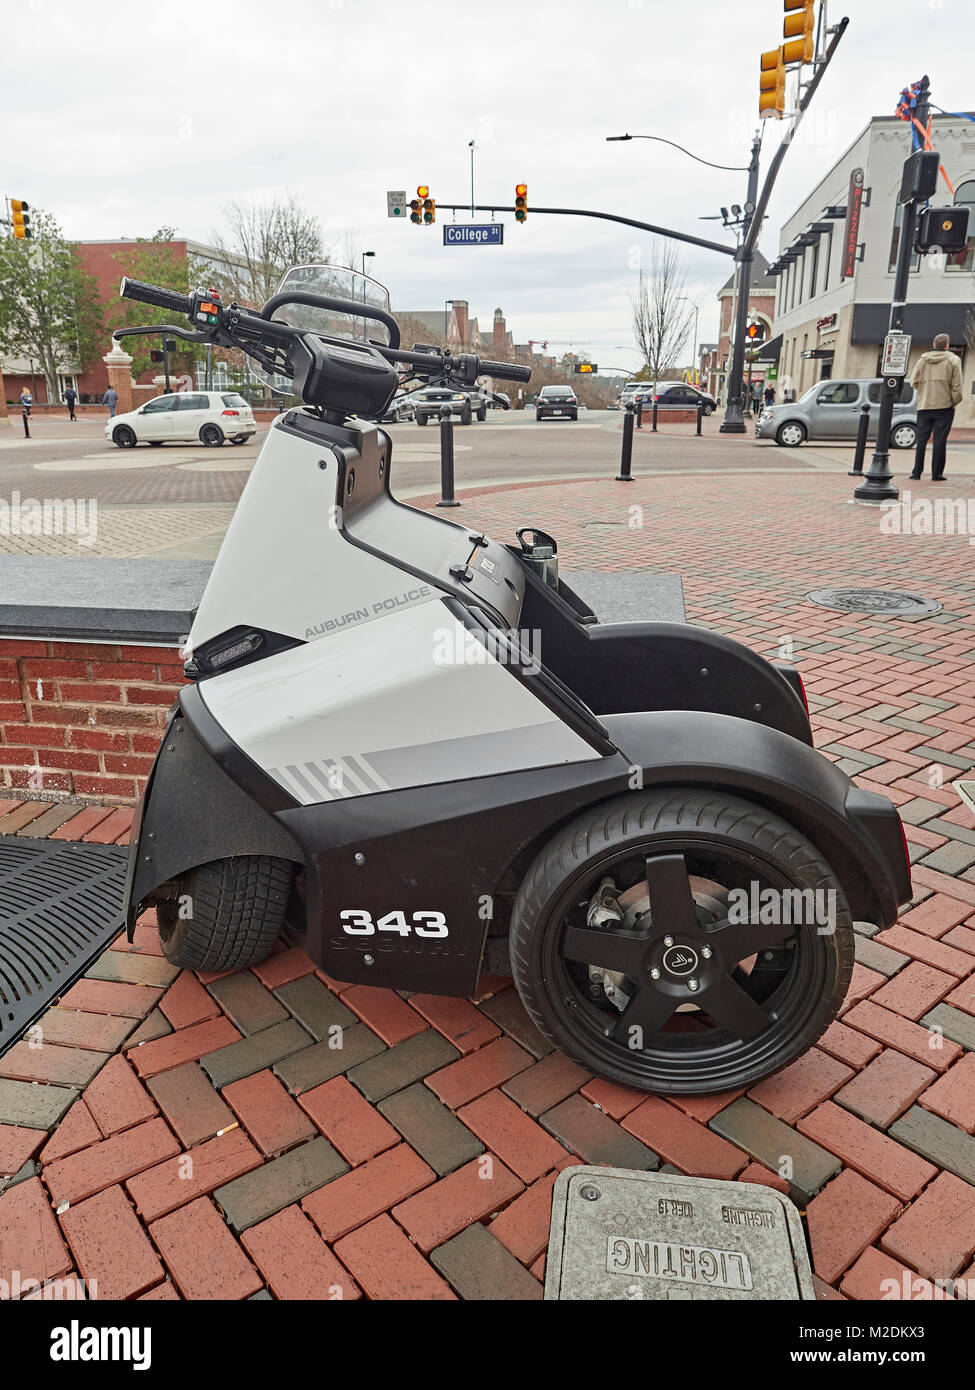 Segway SE-3 Patroller police transportation vehicle parked and ready to go at Toomer's Corner, in Auburn Alabama, - Stock Image